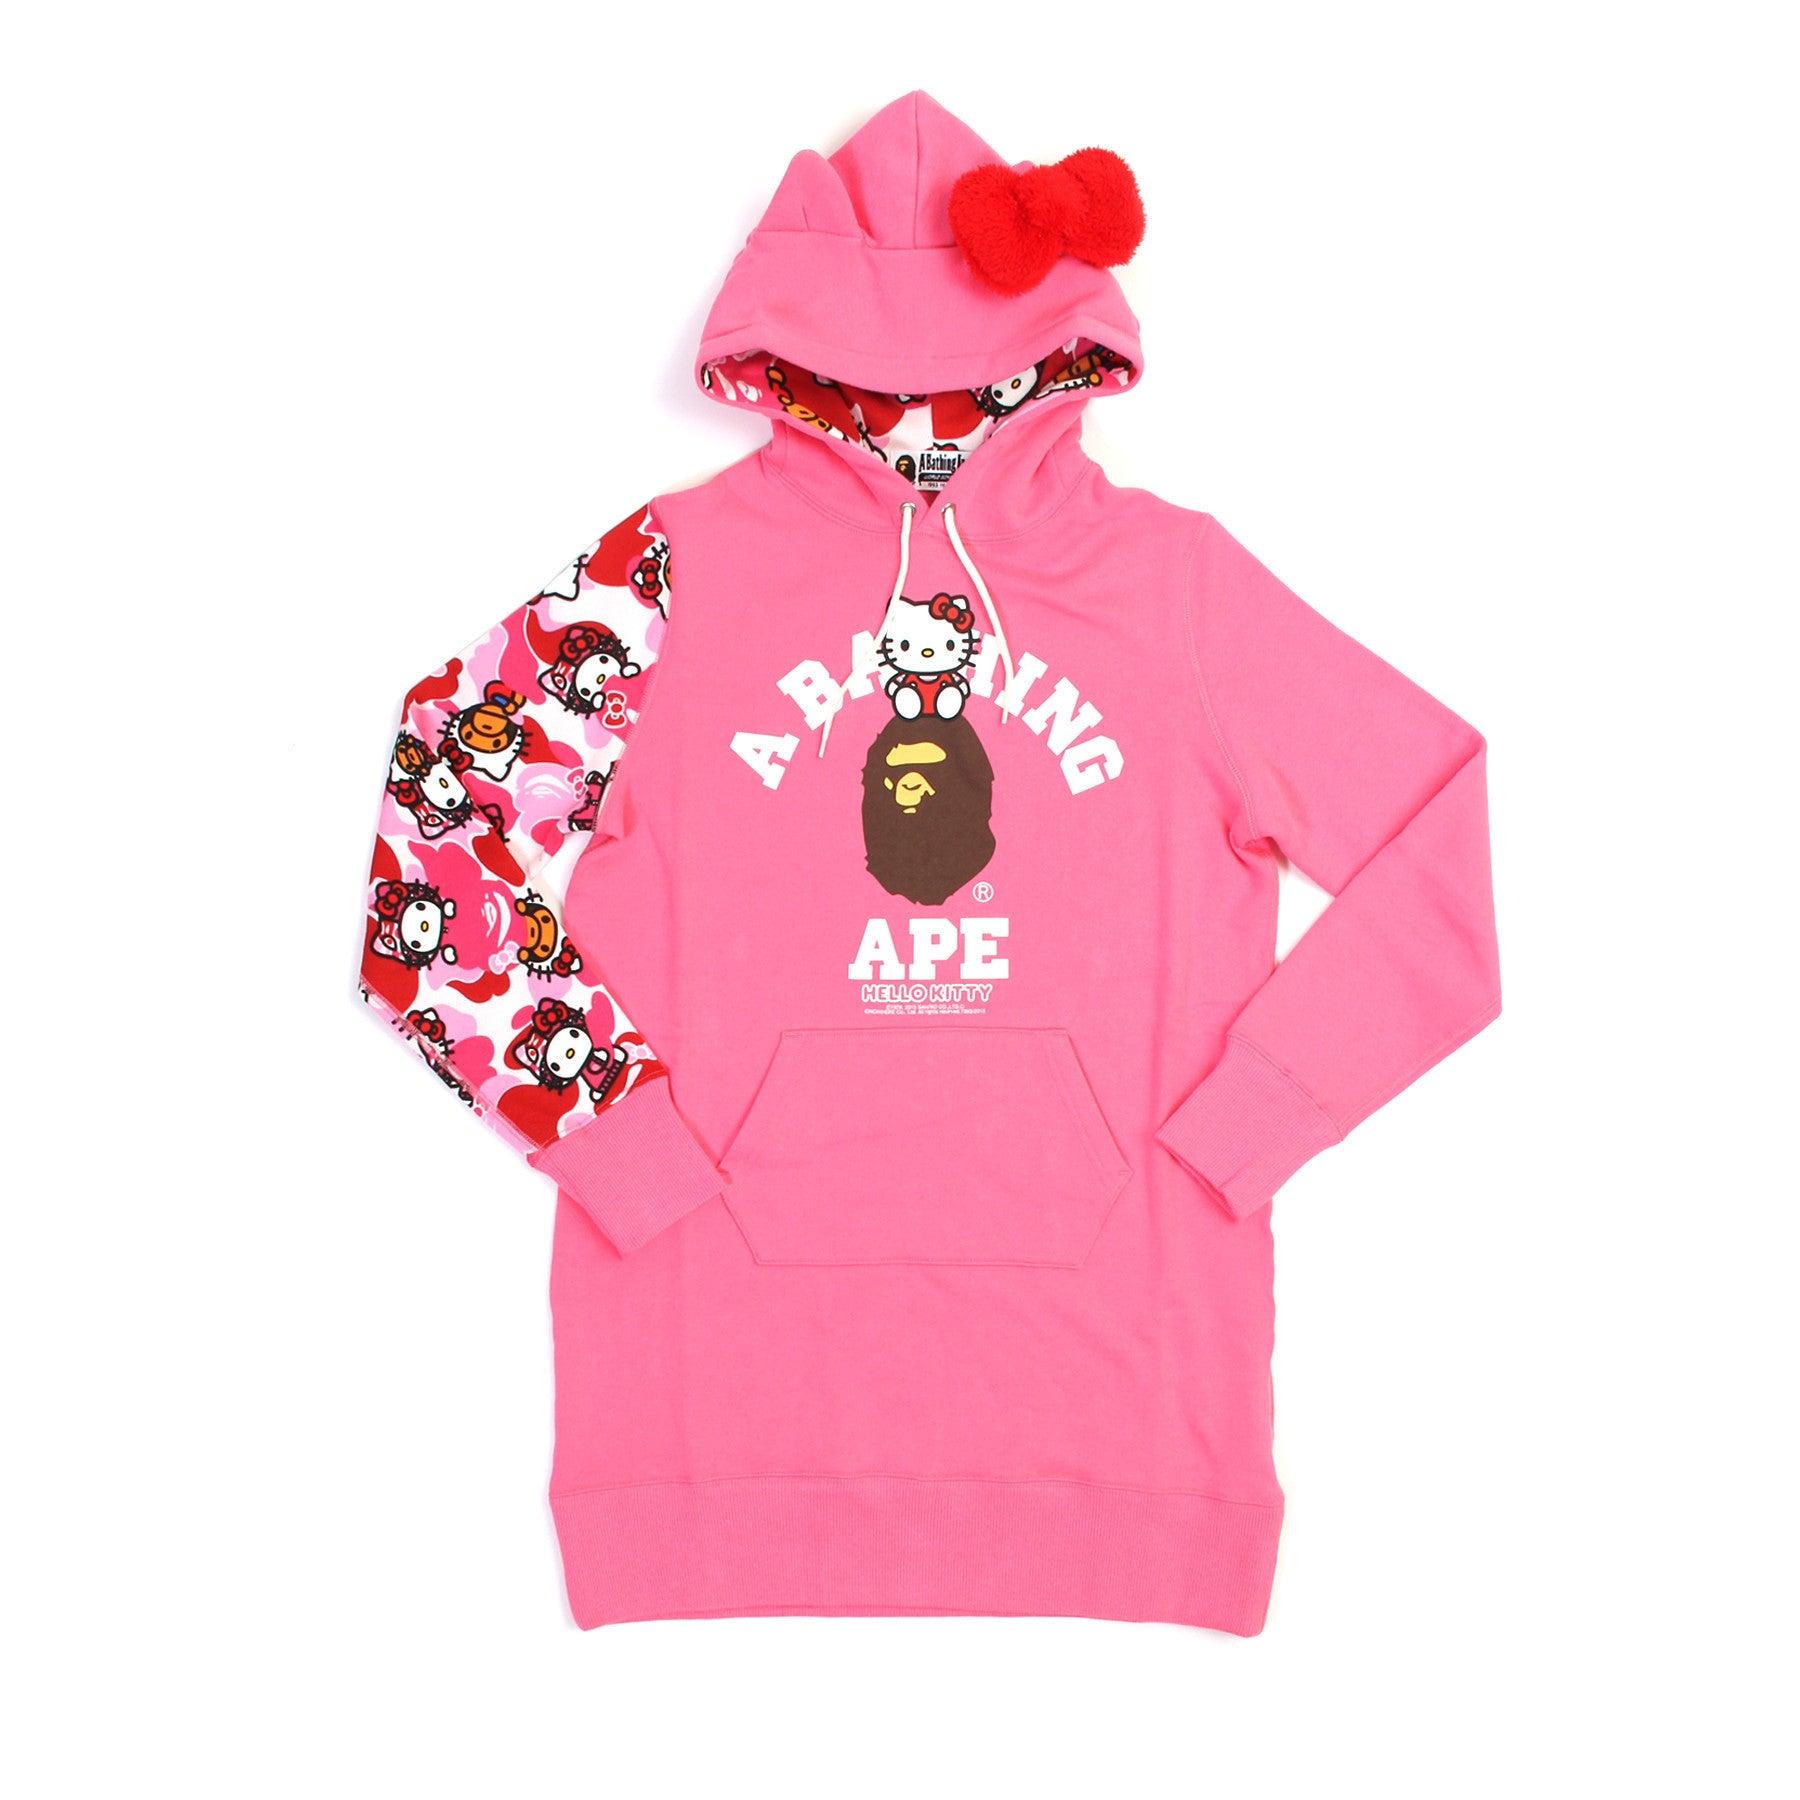 ce0da84e2 Dev Concepts | BAPE x Hello Kitty Hoodie (Pink)